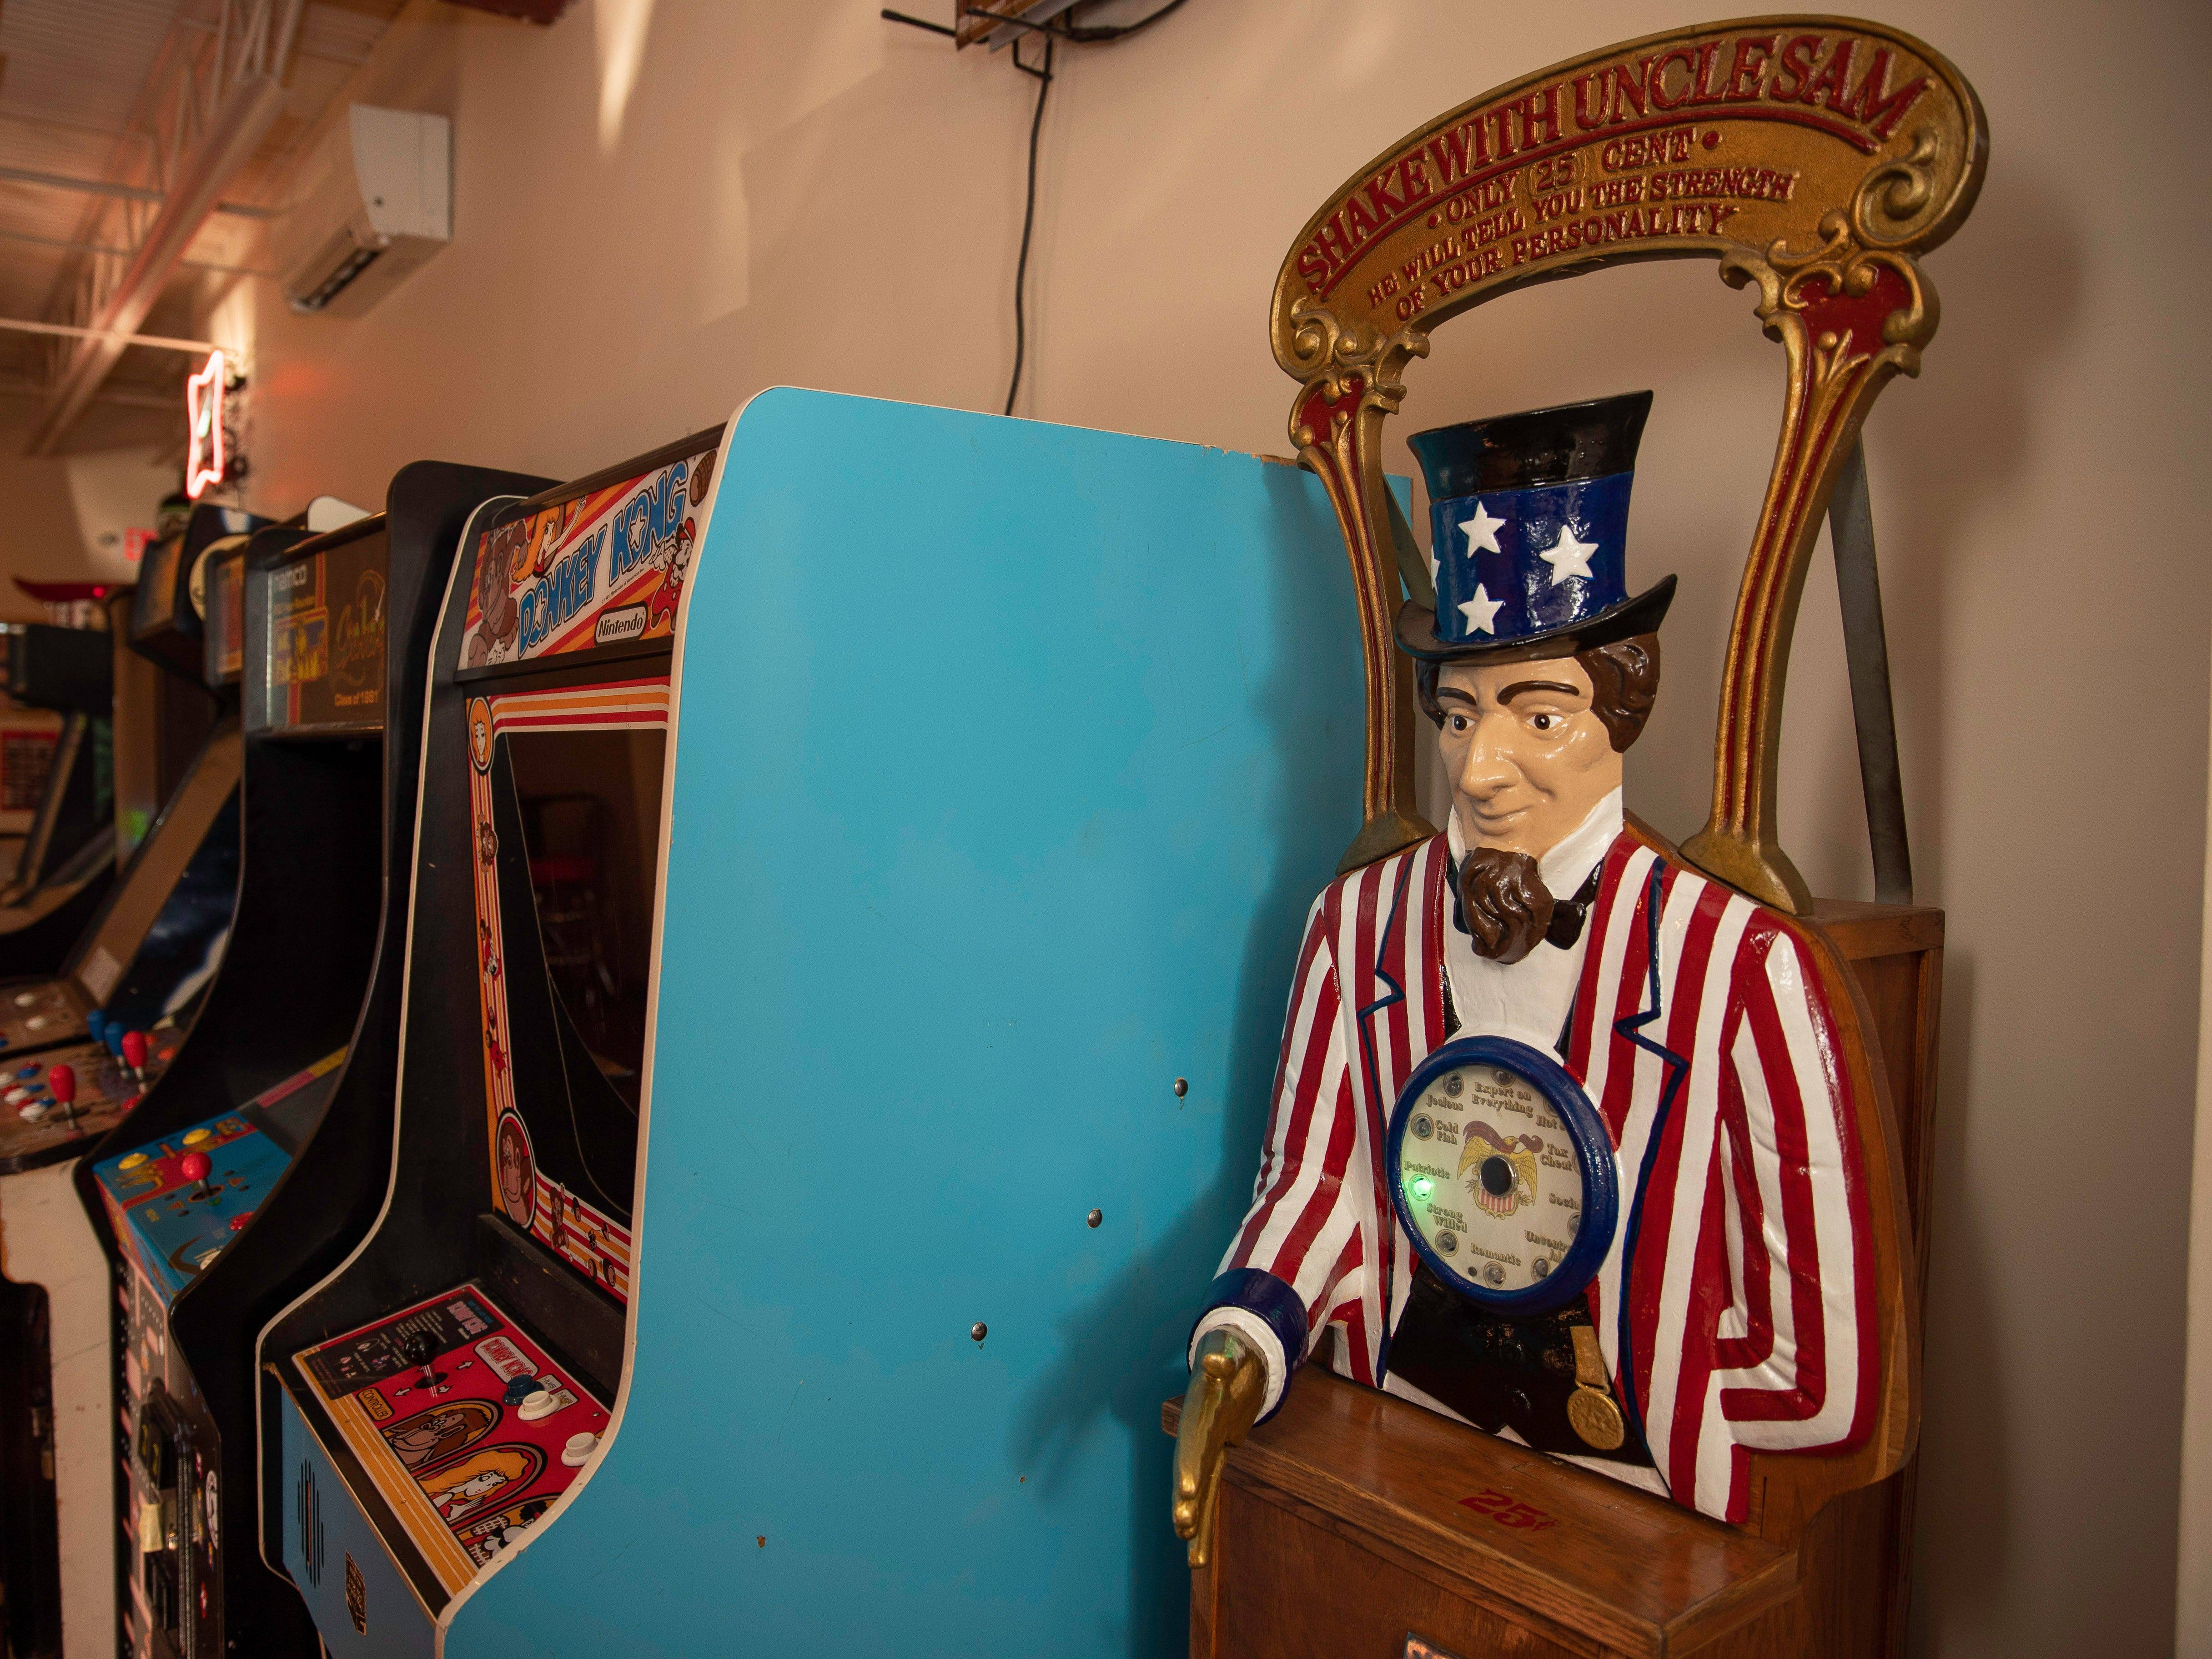 Shake with Uncle Sam personality tester, a unique find in the game room of Butchertown Pizza Hall, Wednesday, Nov. 7, 2018 in Louisville Ky.